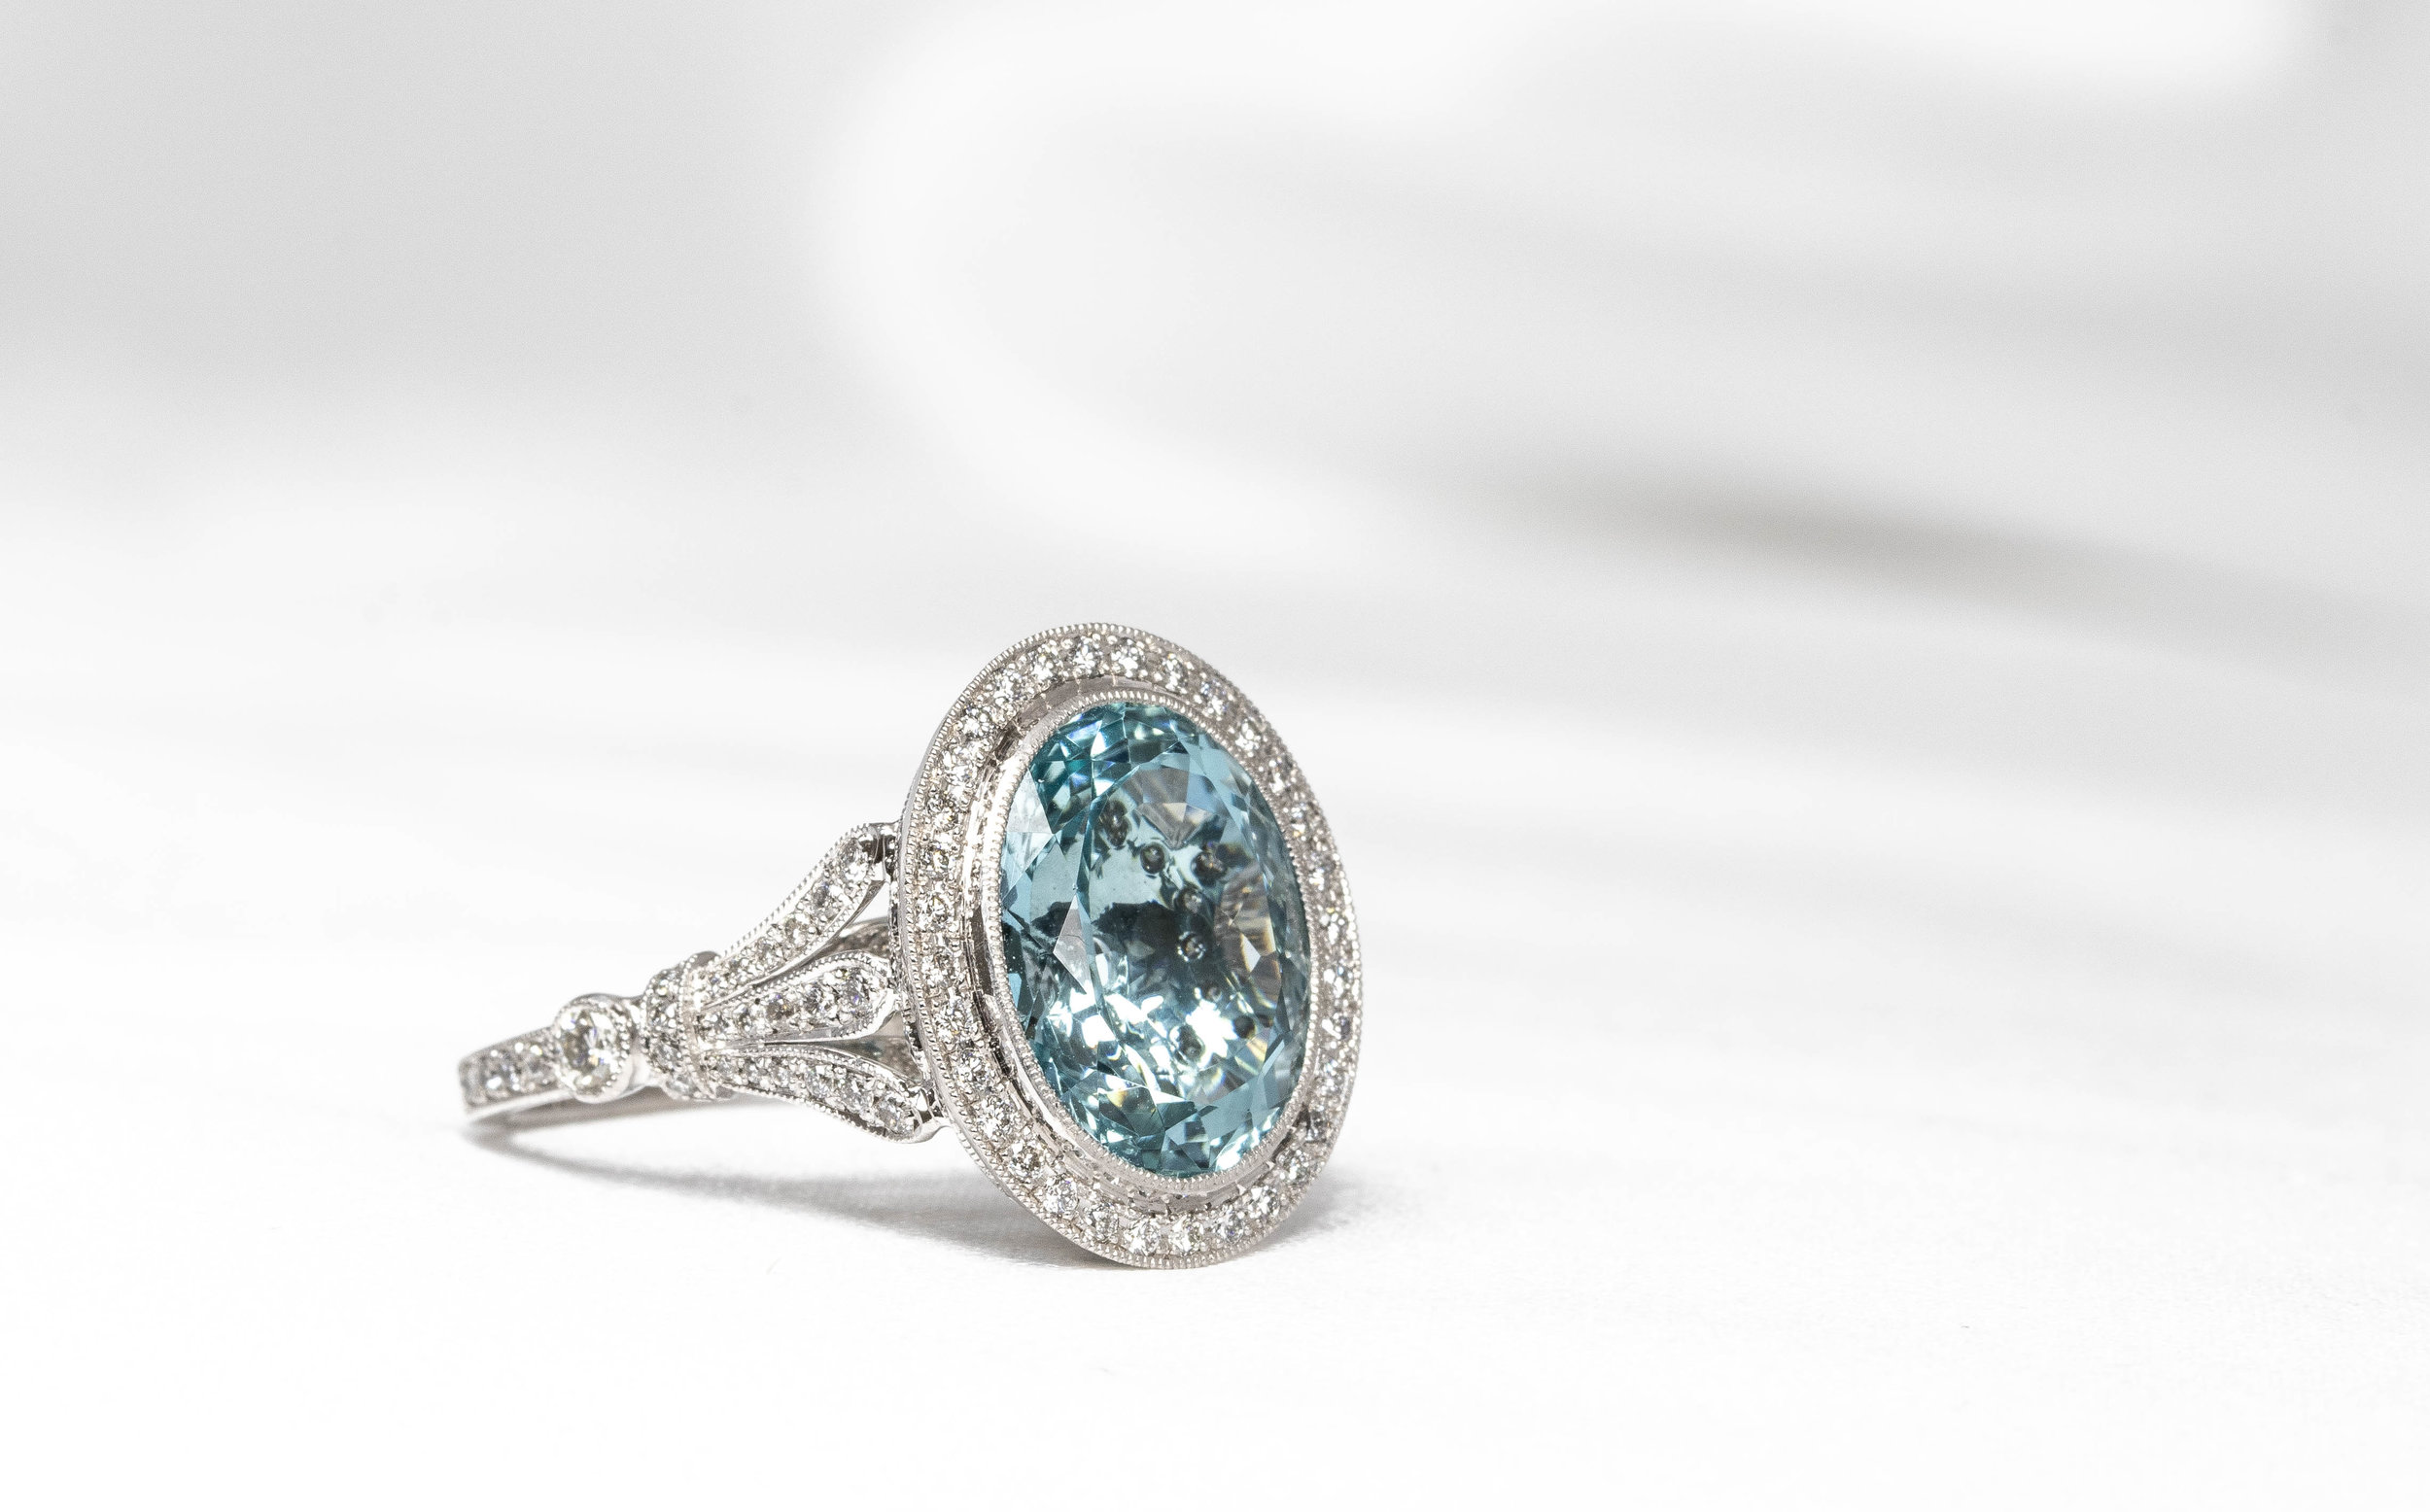 Platinum mounted early C20th style aquamarine and diamond oval cluster ring. Made in Chichester, England.